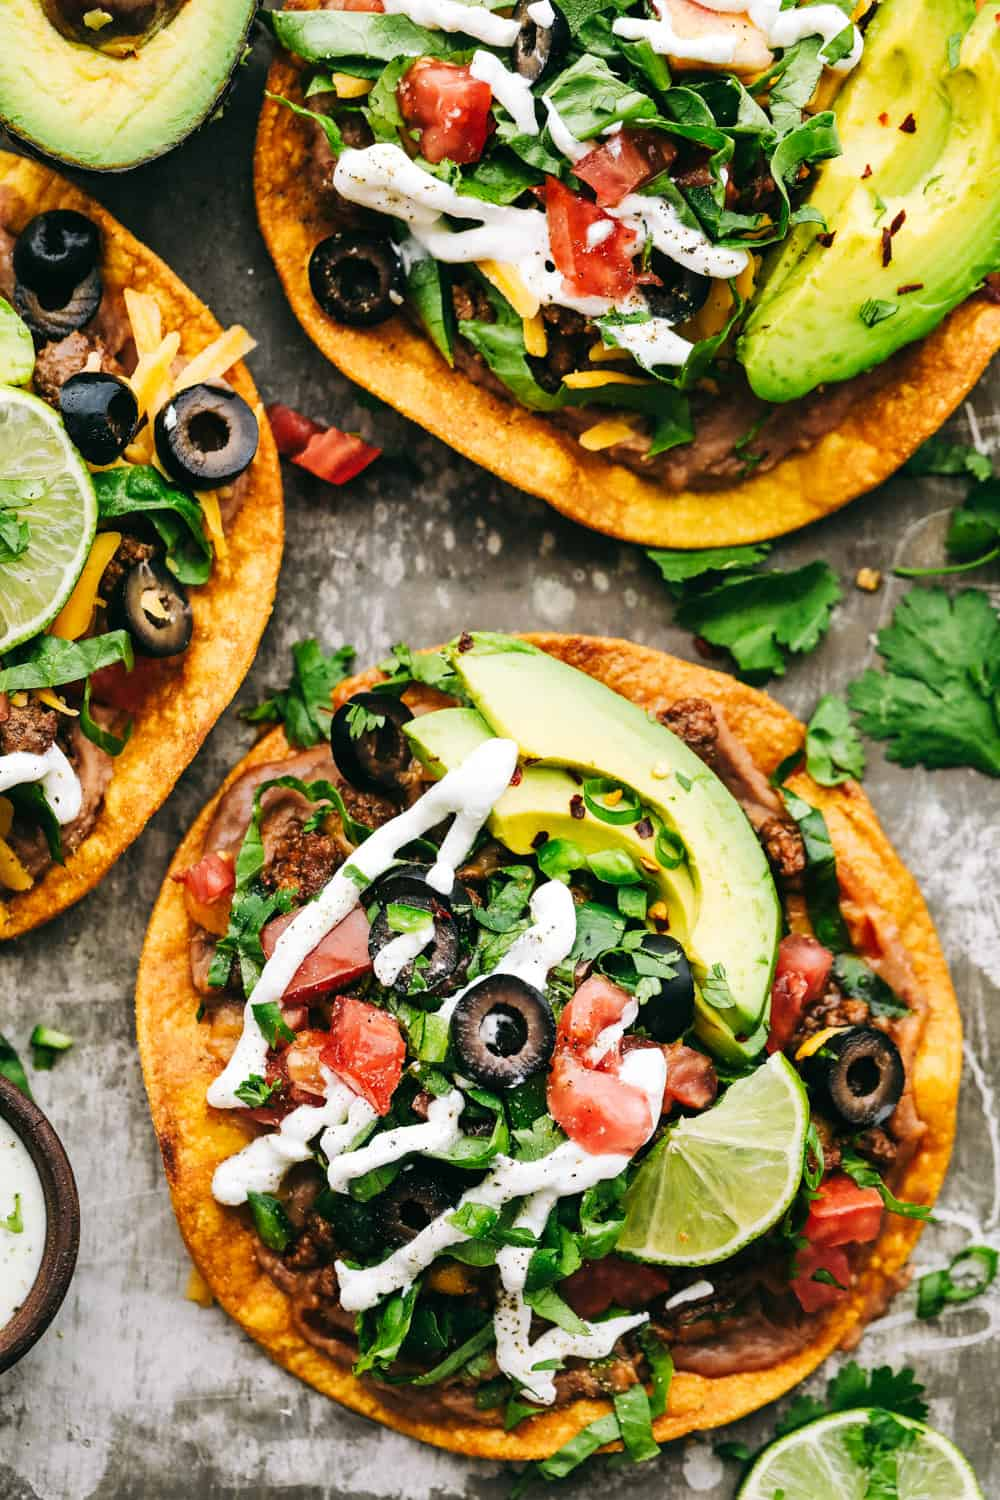 Three tostadas layered with optional toppings.